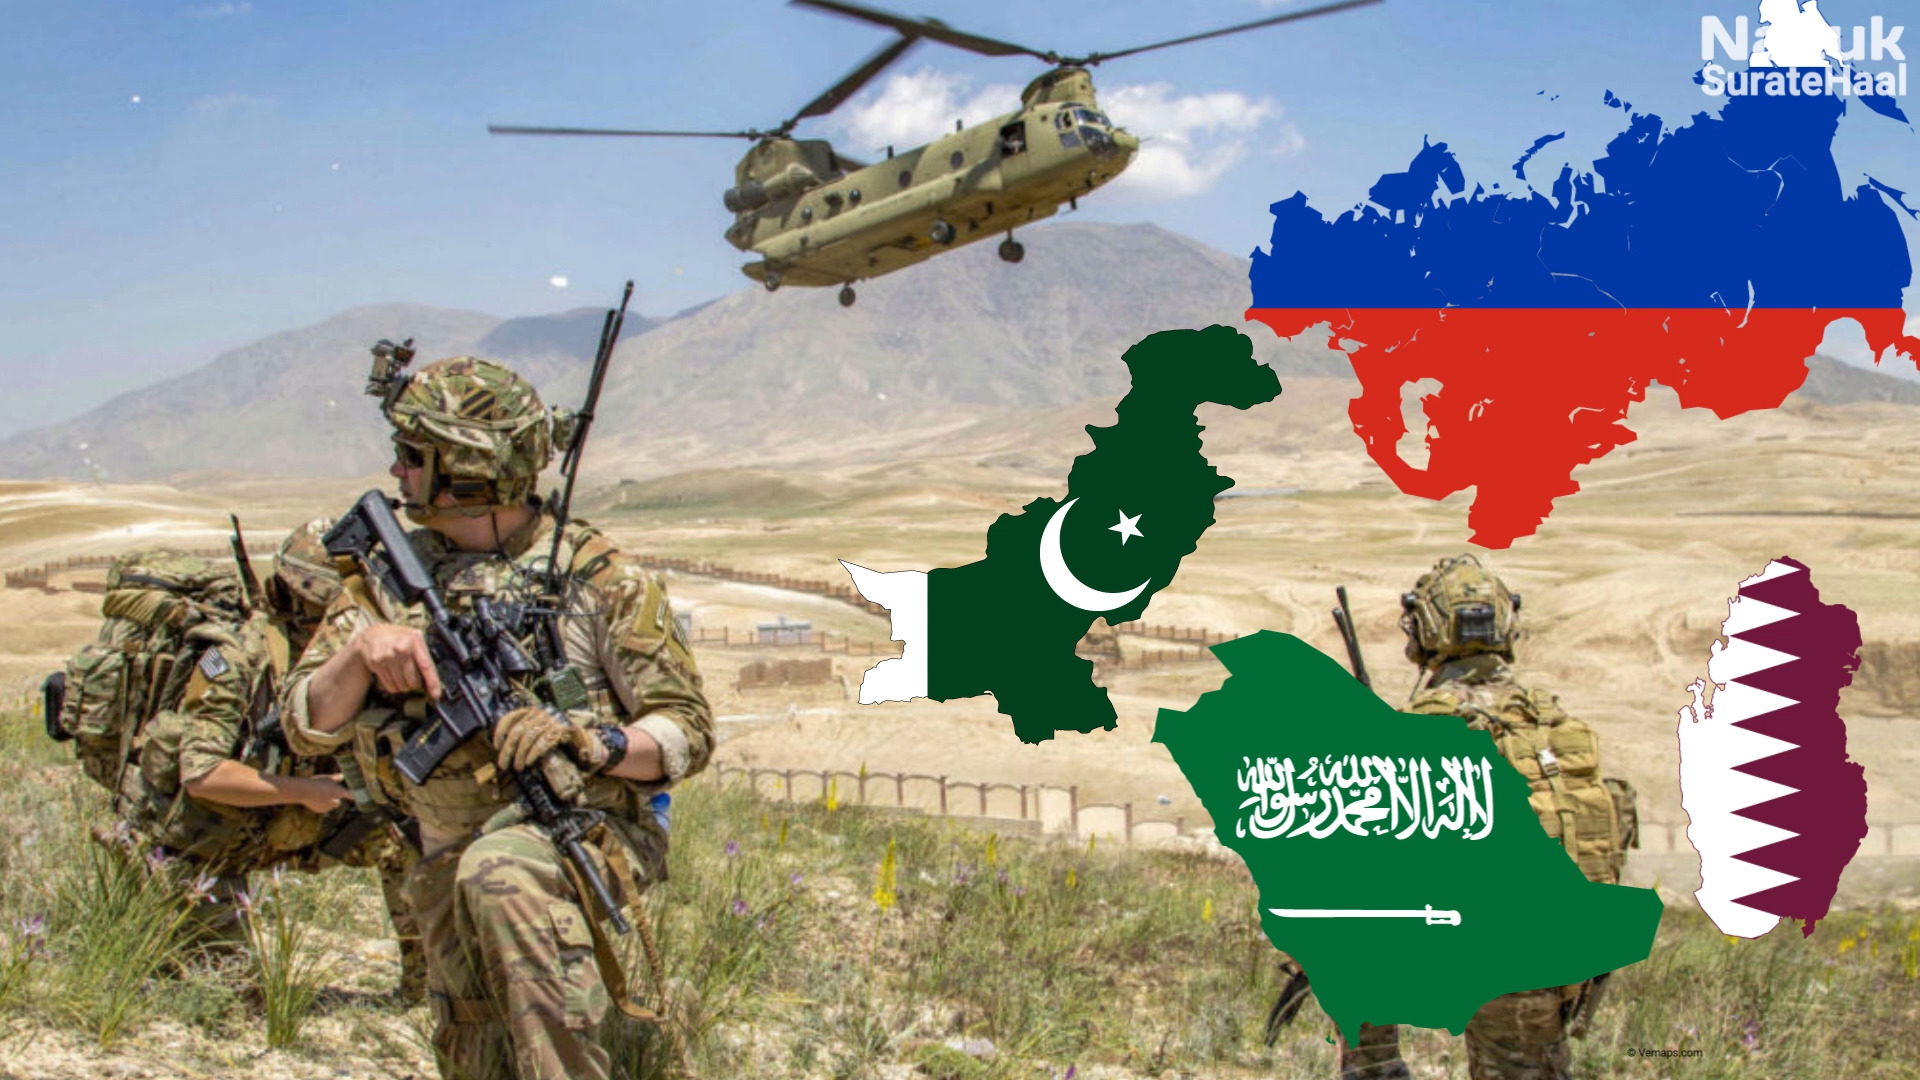 NATO claims that Pakistan funds Taliban